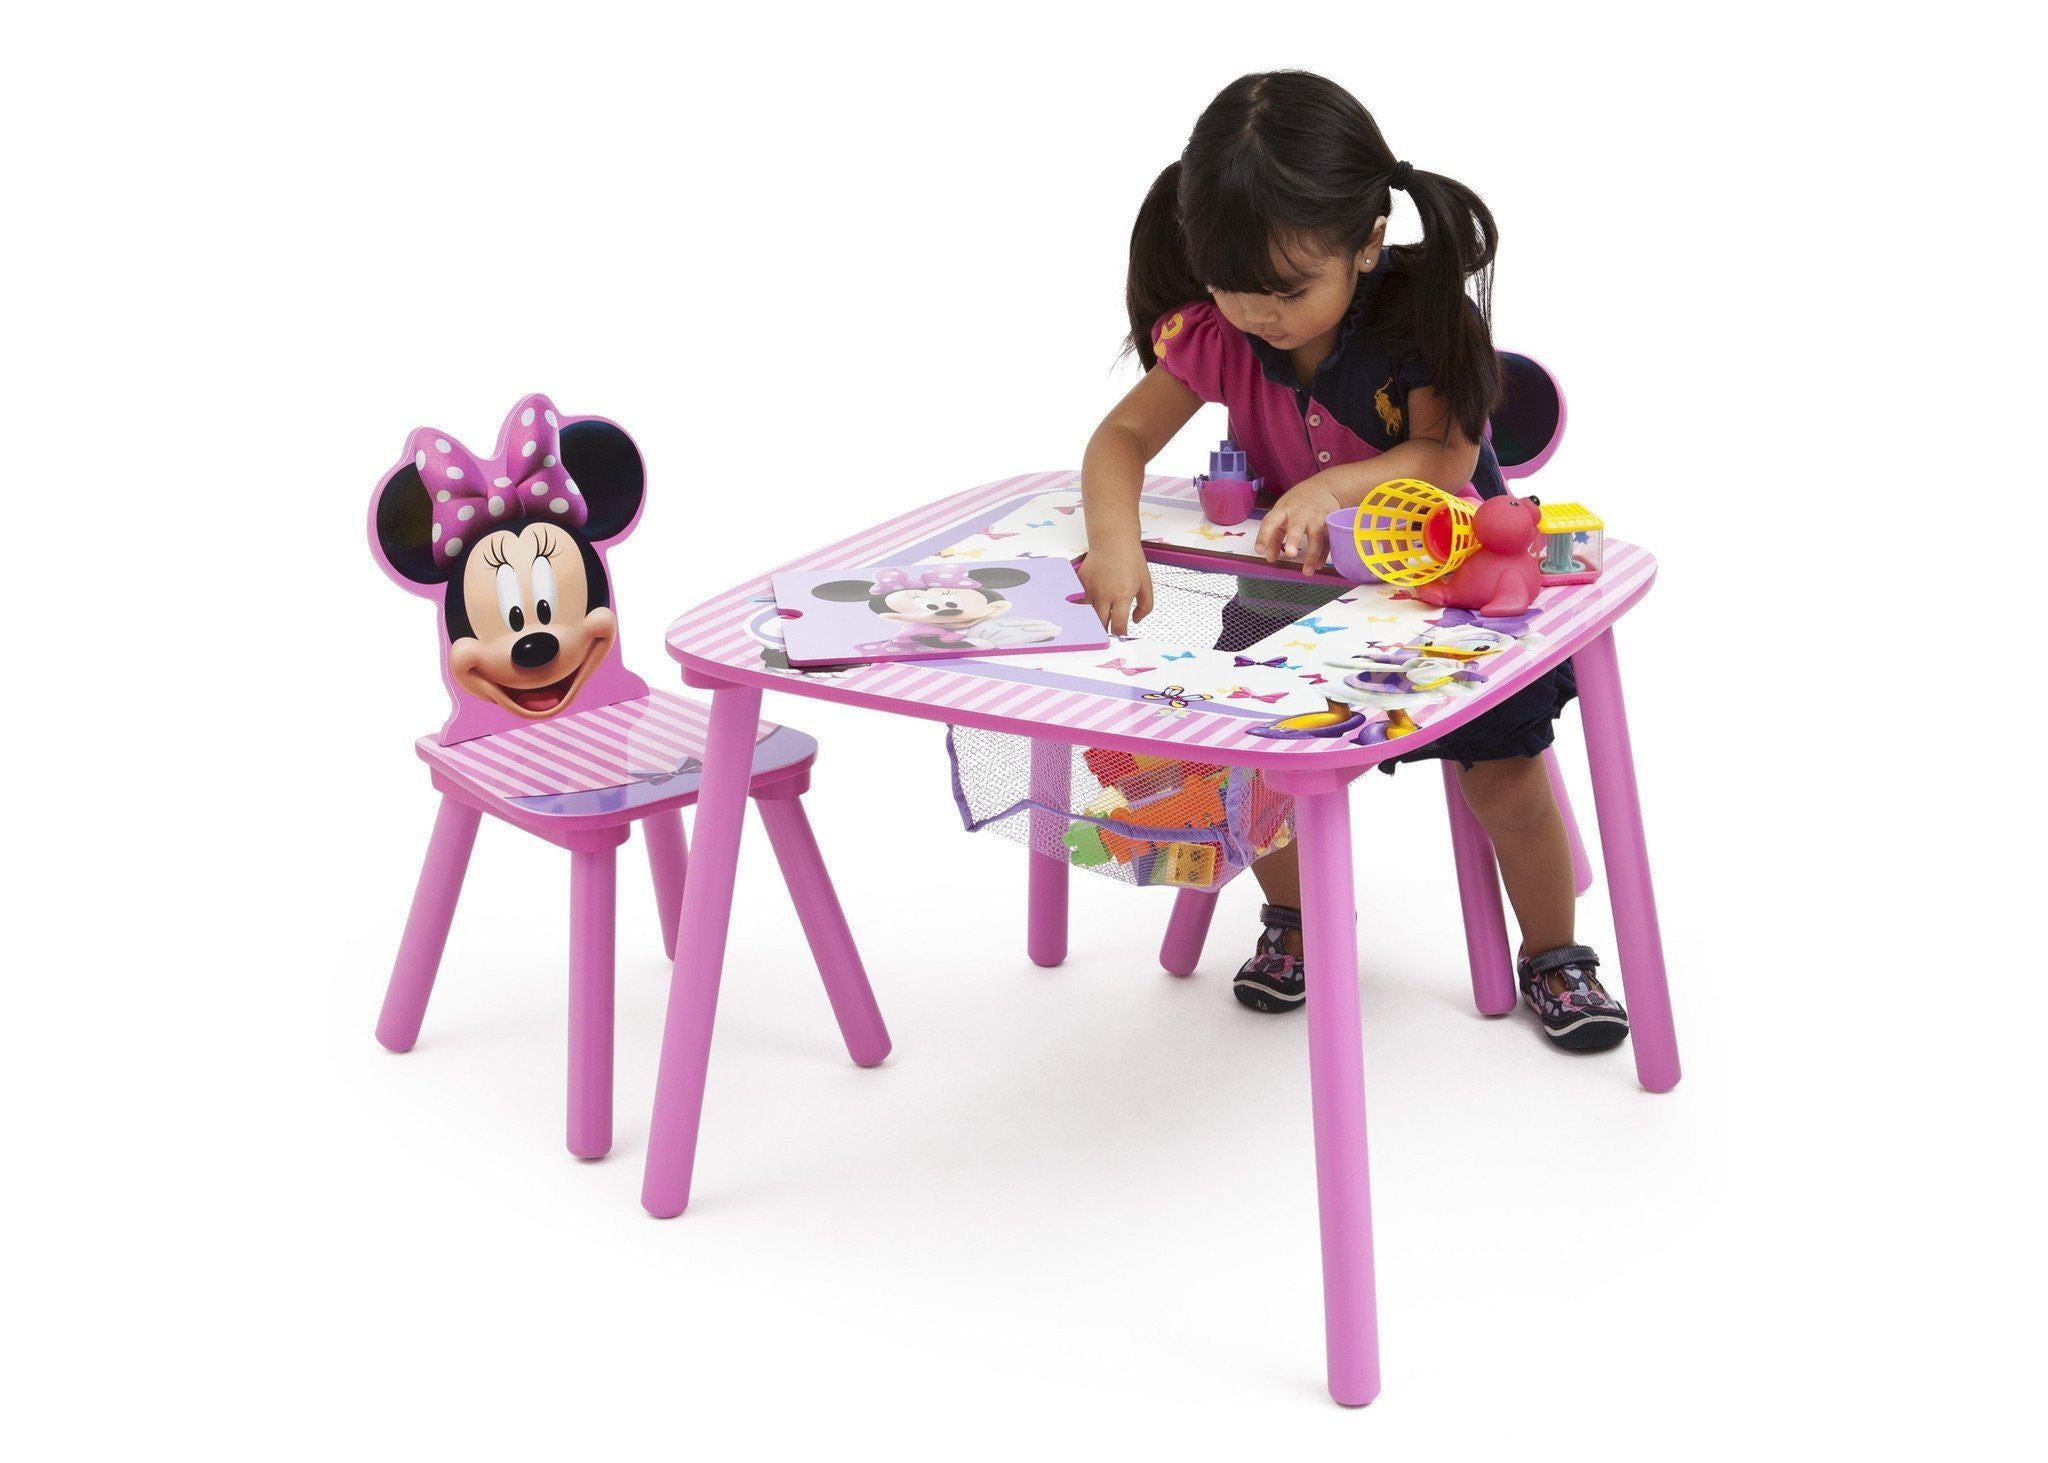 ... Delta Children Minnie Mouse Table and Chair Set with Storage Left View with Model a3a  sc 1 st  Delta Children & Minnie Mouse Table \u0026 Chair Set with Storage | Delta Children